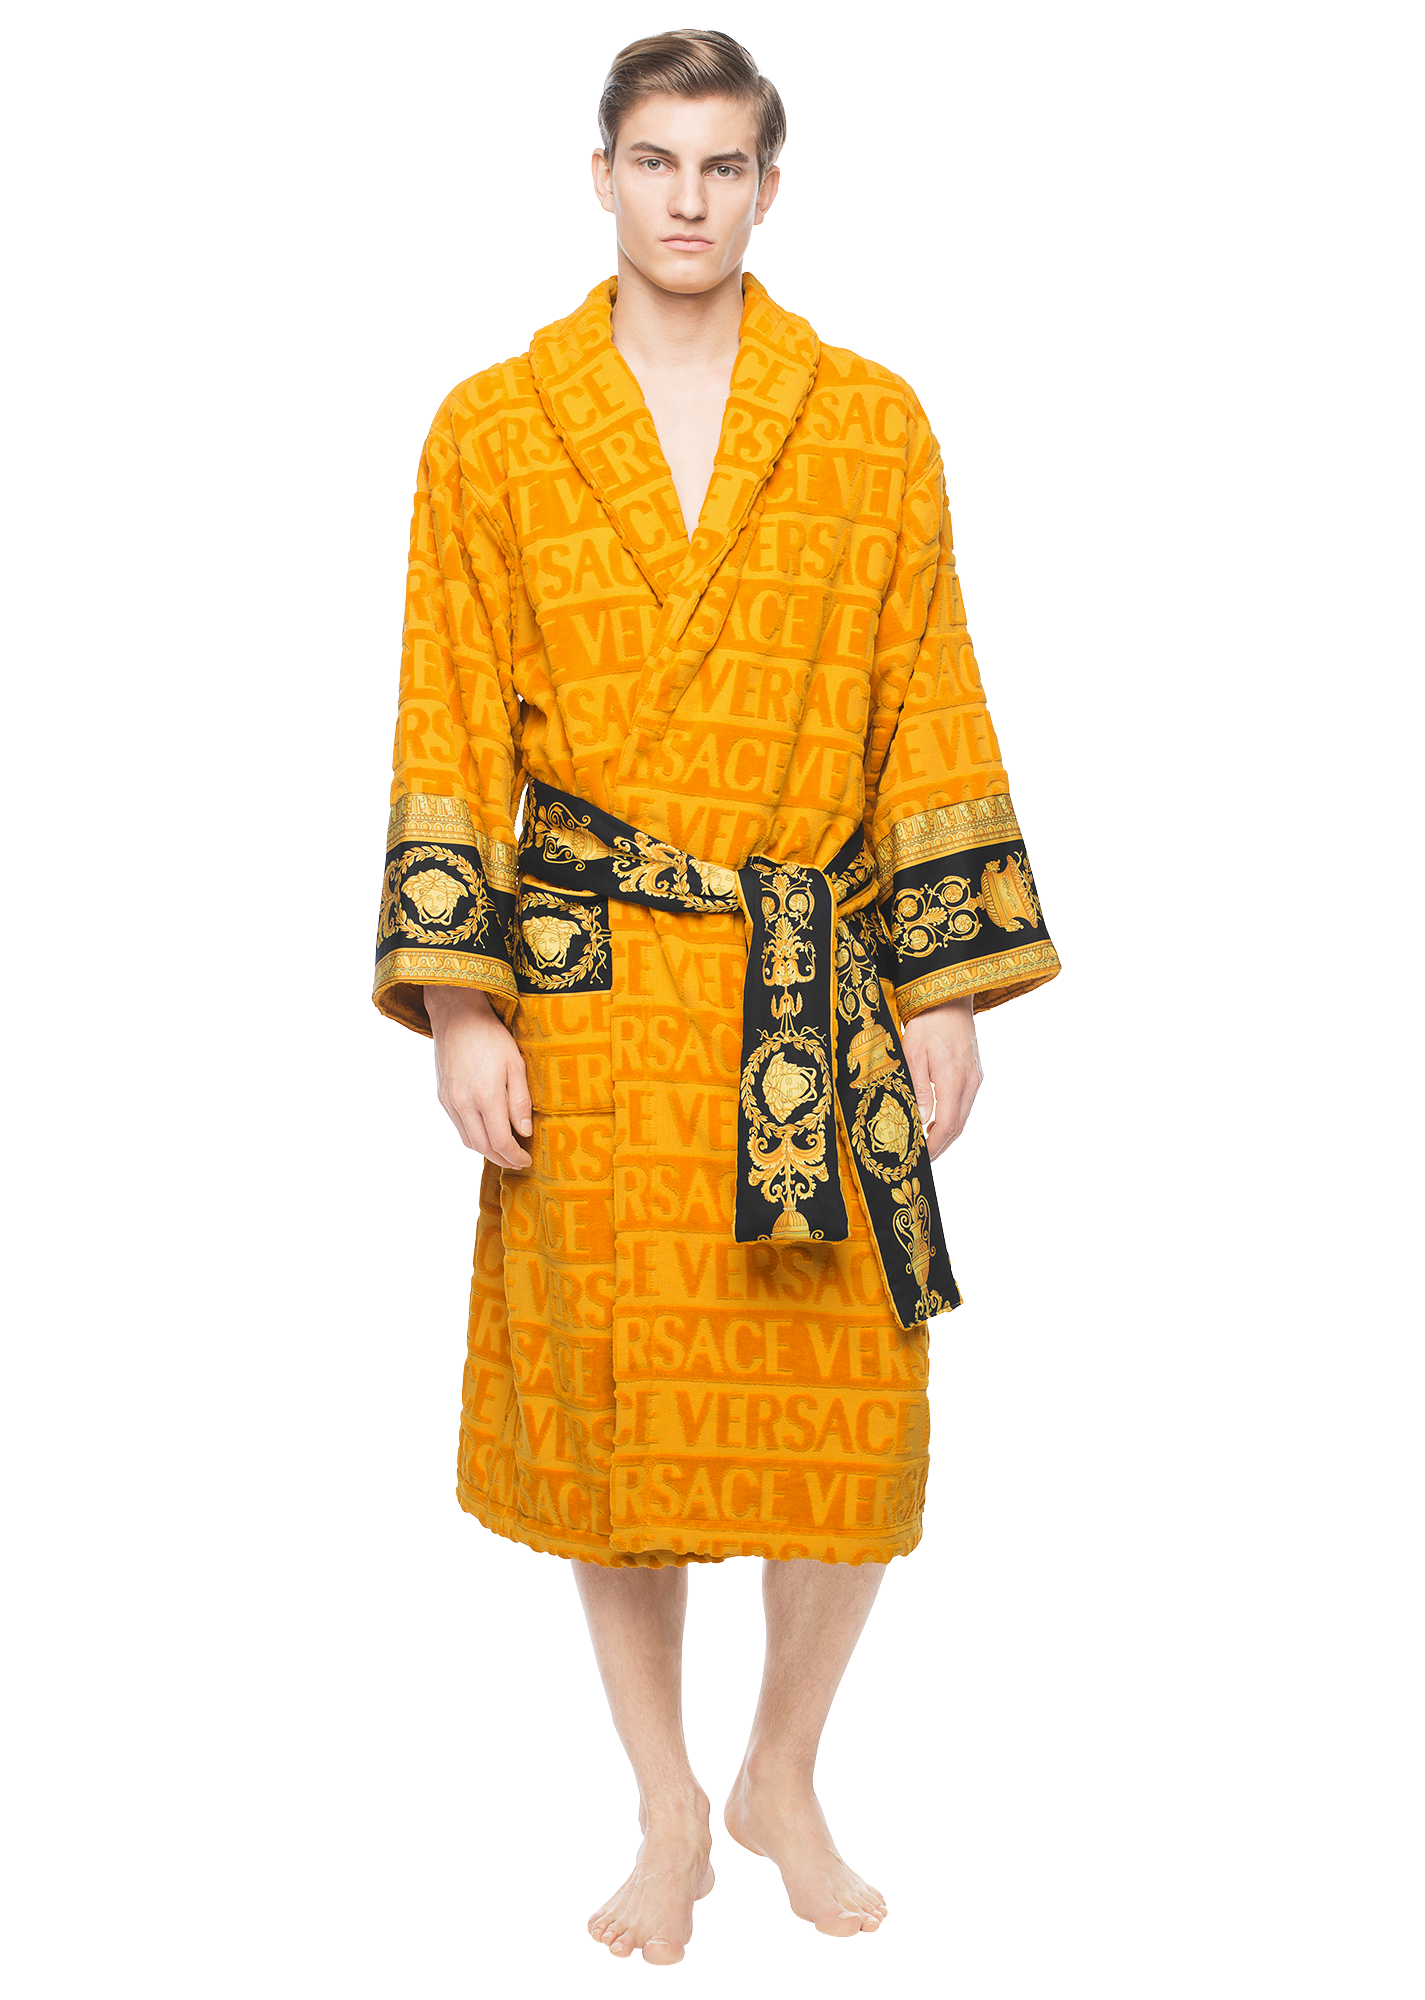 41664f19cd Versace. I ♥ Baroque Bathrobe - Z4004 Holiday Gifts. December 2016 ...